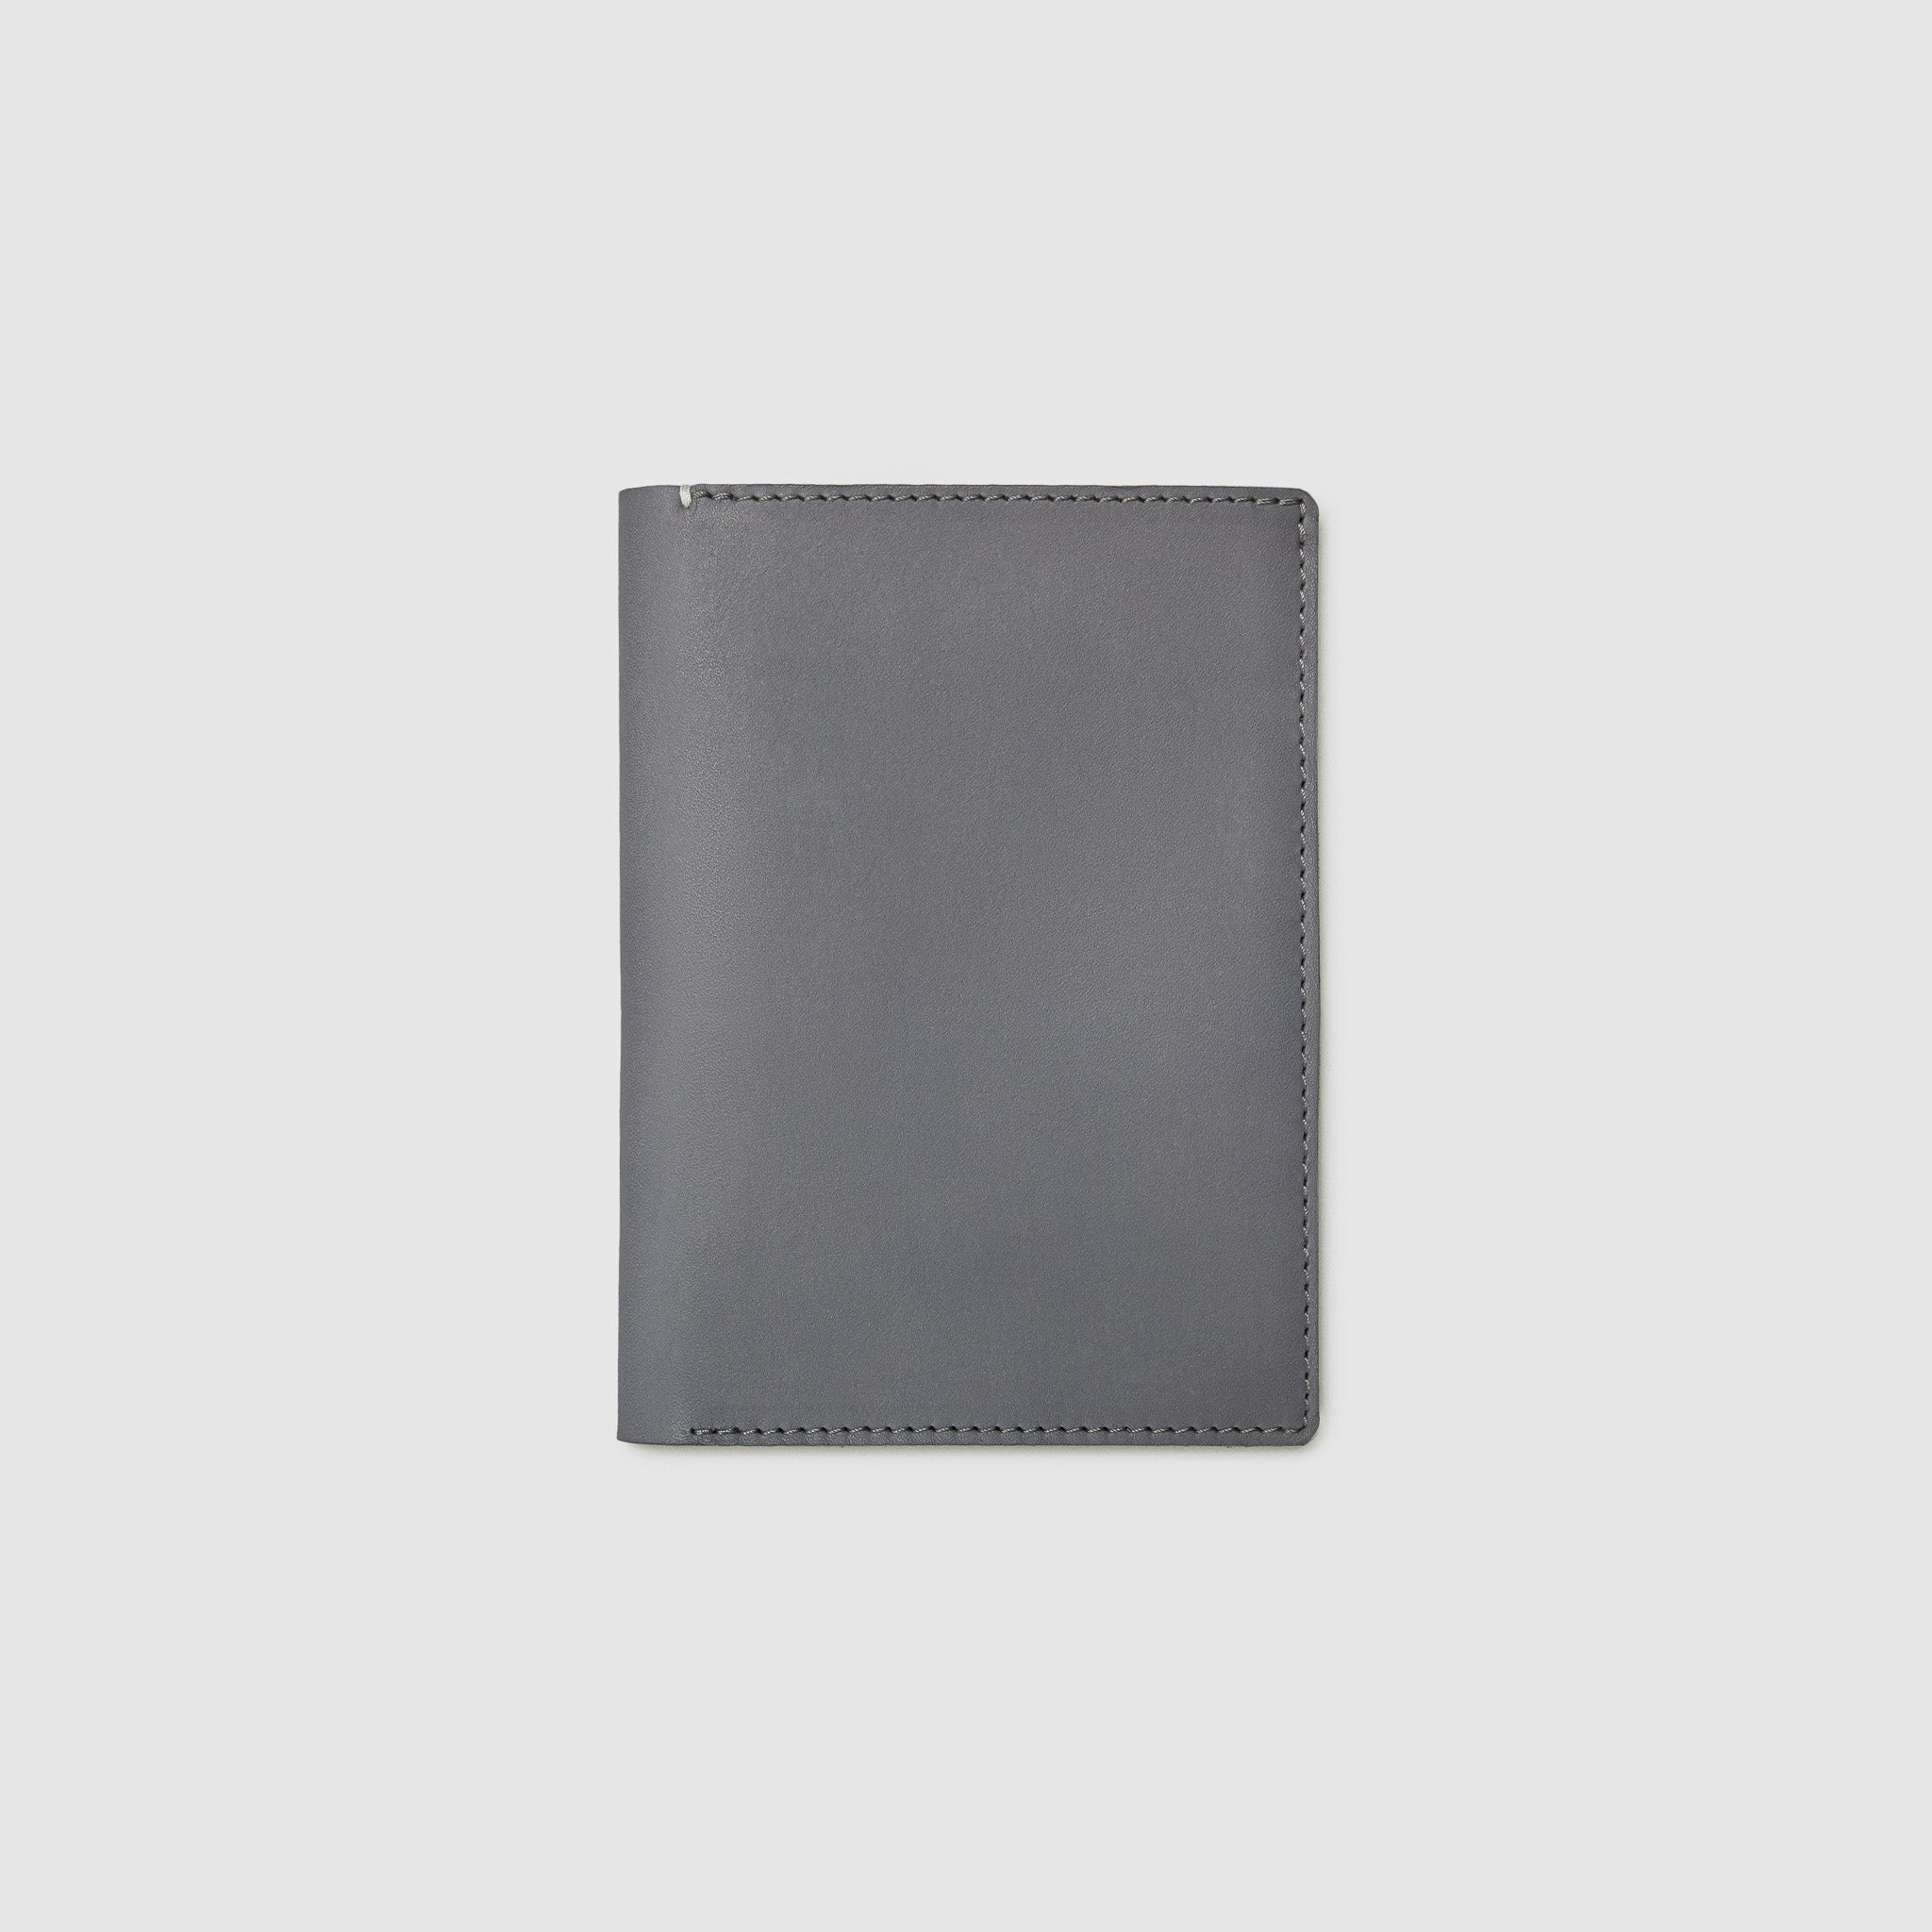 PASSPORT WALLET WALLET ANSON CALDER French Calfskin _blackPASSPORT WALLET WALLET ANSON CALDER French Calfskin _steel-grey